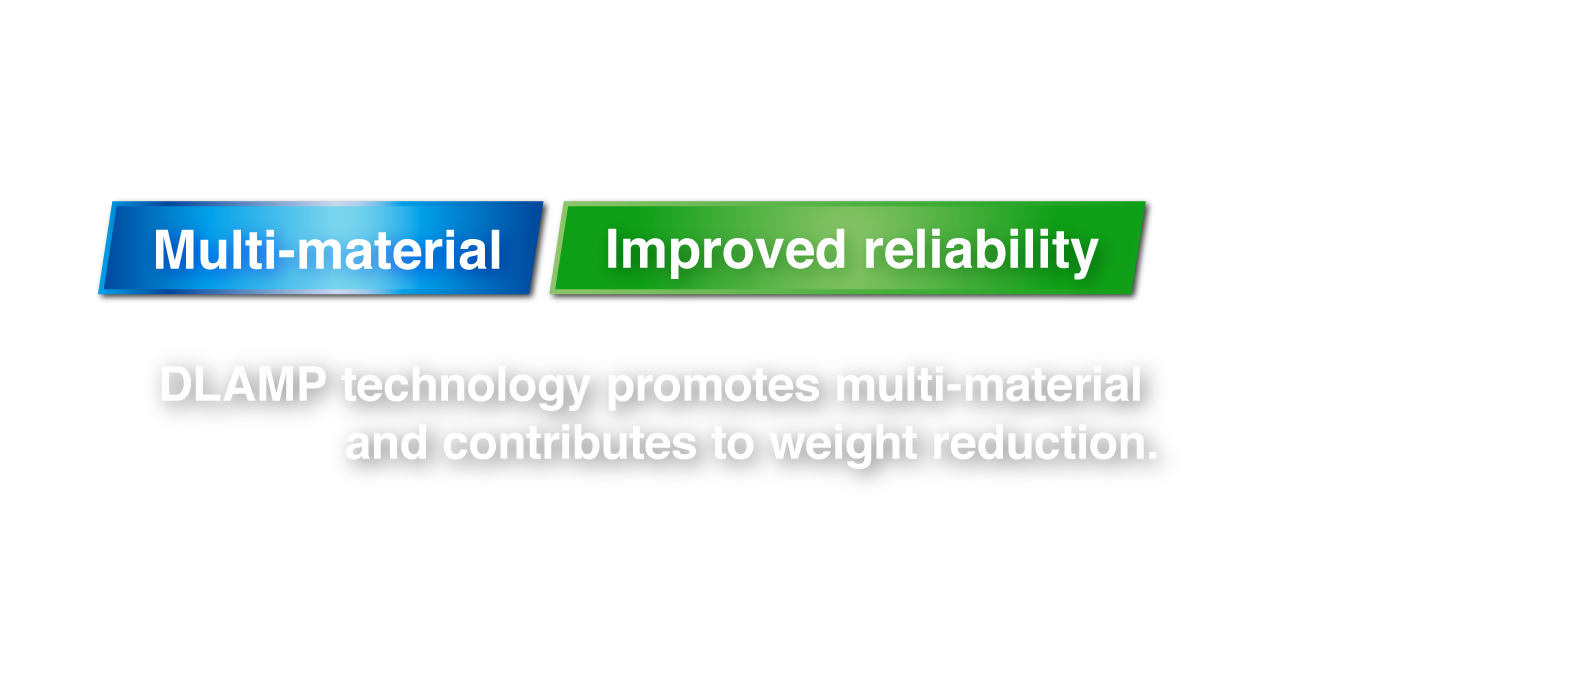 DLAMP technology promotes multi-material and contributes to weight reduction.